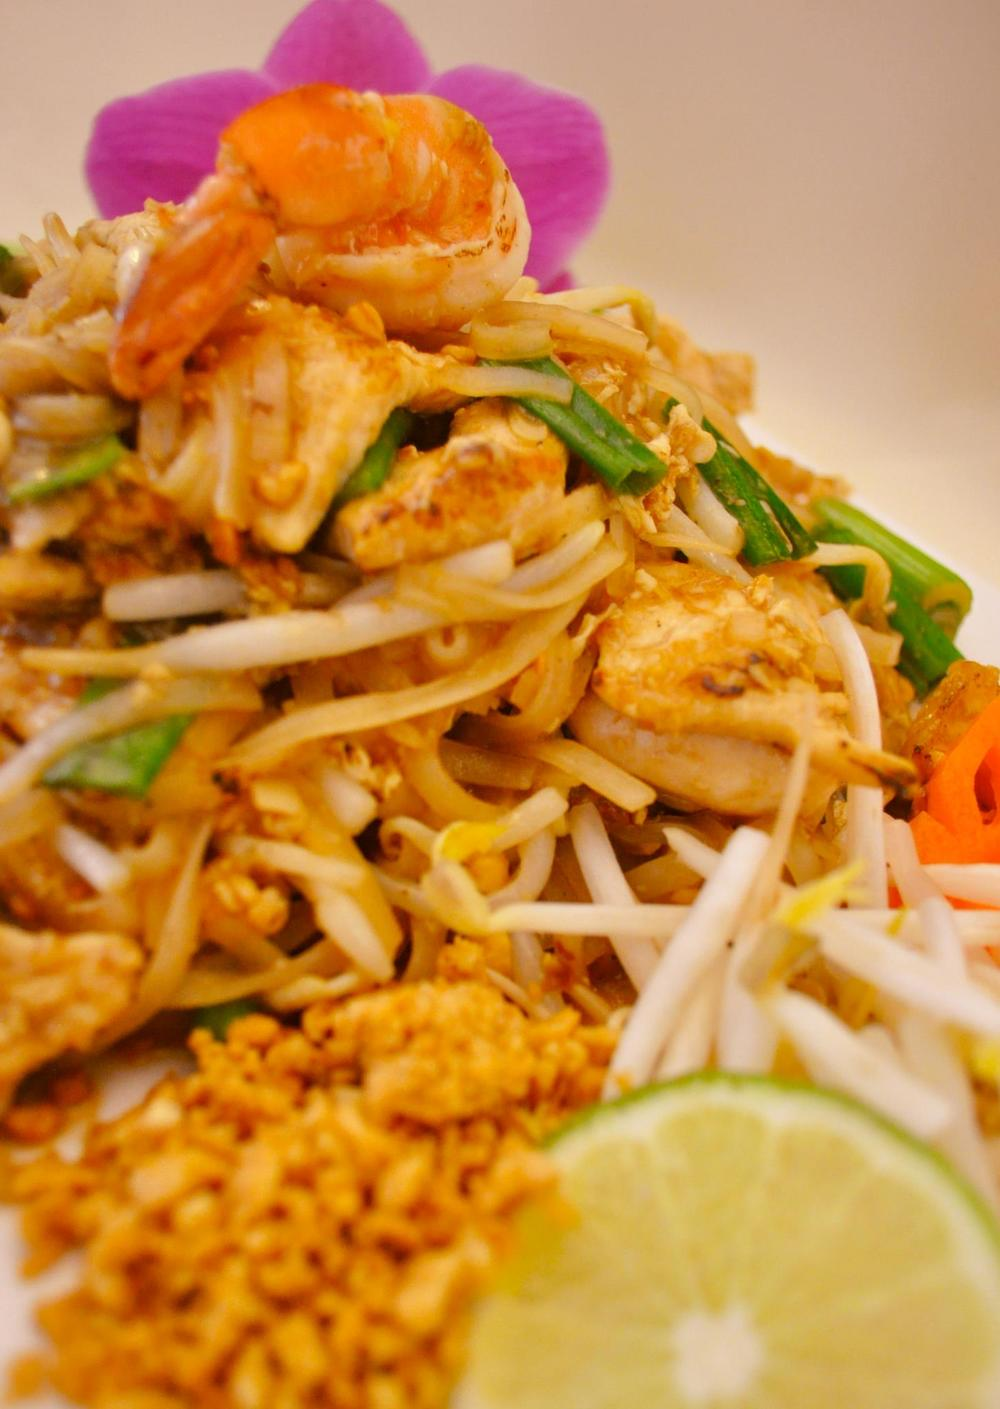 The Thai Pad Thai